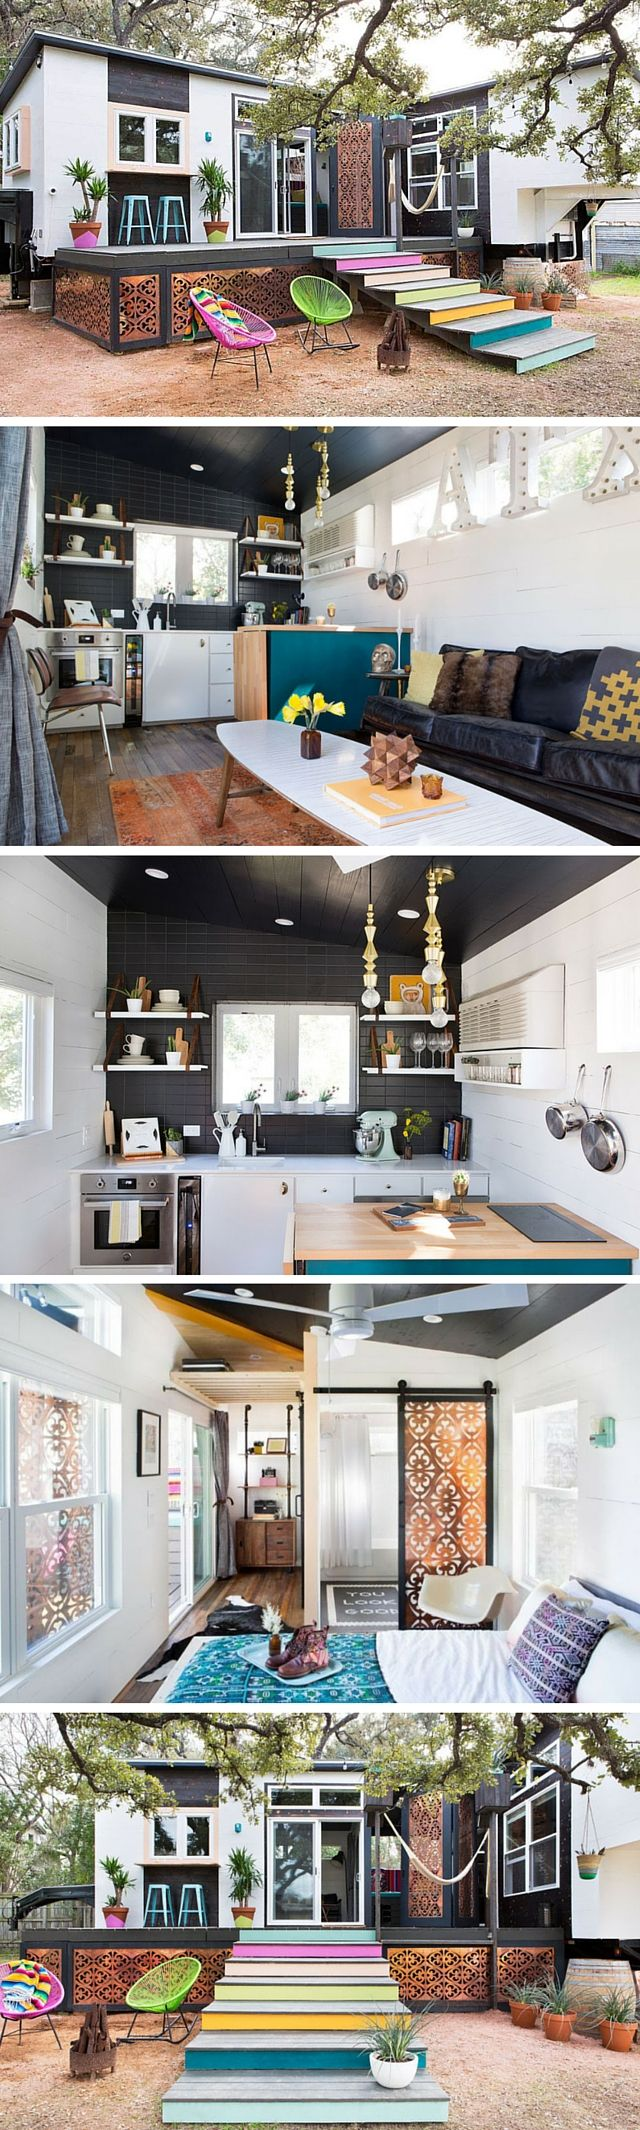 Great Ideas About Small Home Interior Design On Pinterest - Homes interior design